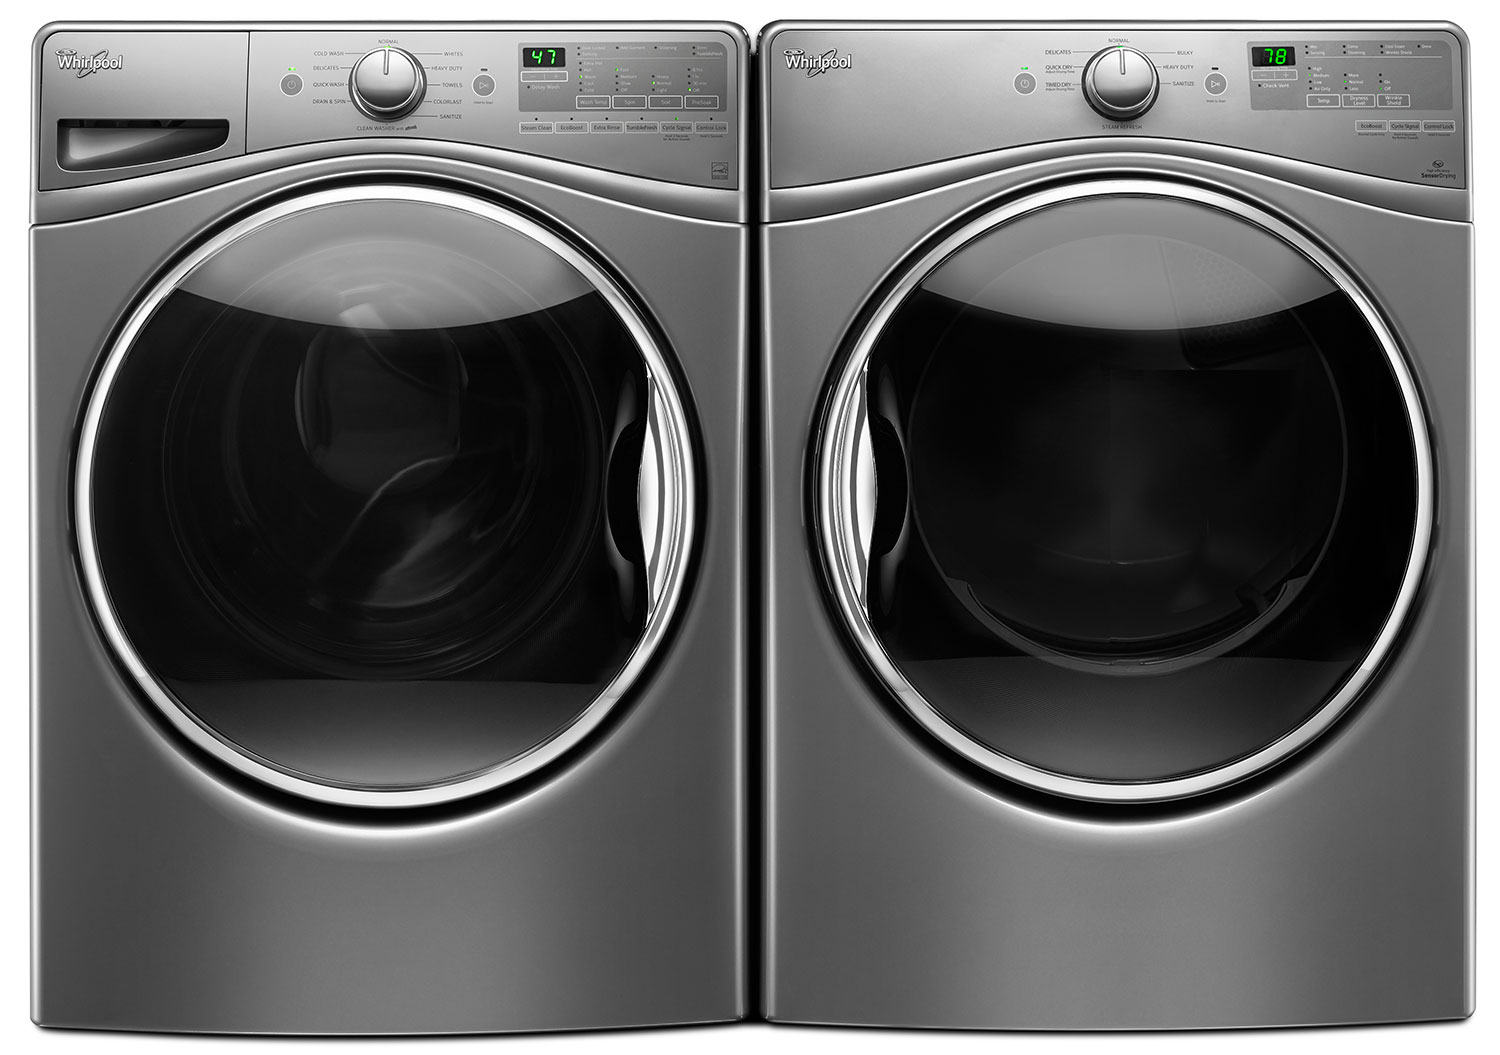 Whirlpool 5 2 Cu Ft Front Load Washer And 7 4 Cu Ft